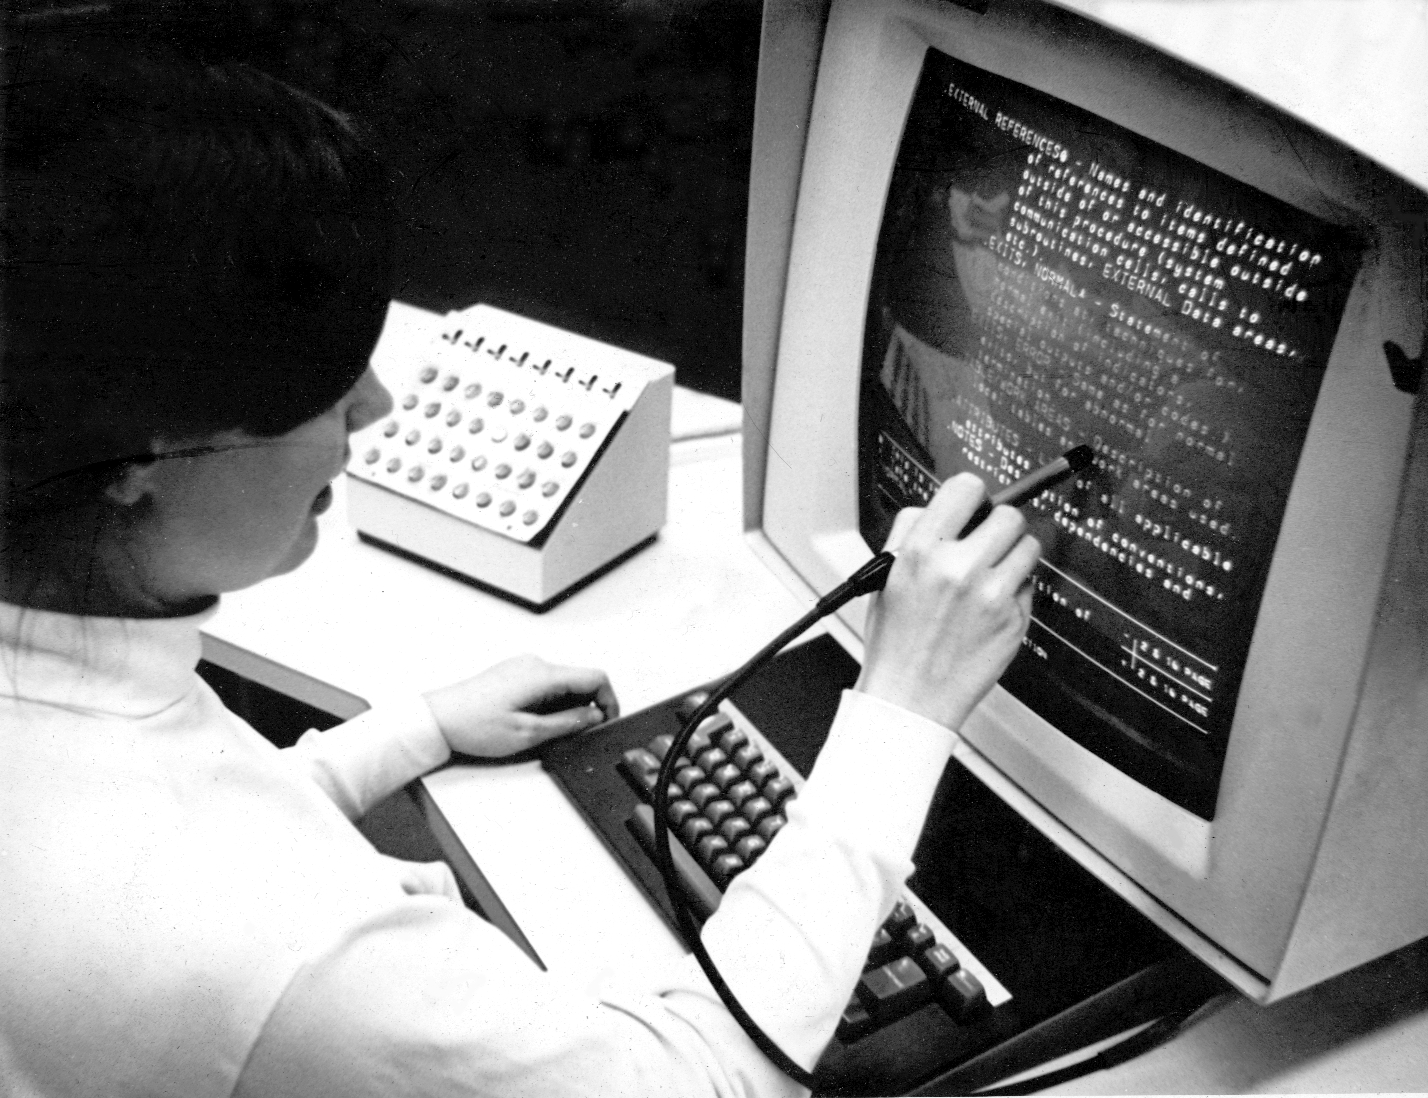 Hypertext Editing System Console Brown University - 1969